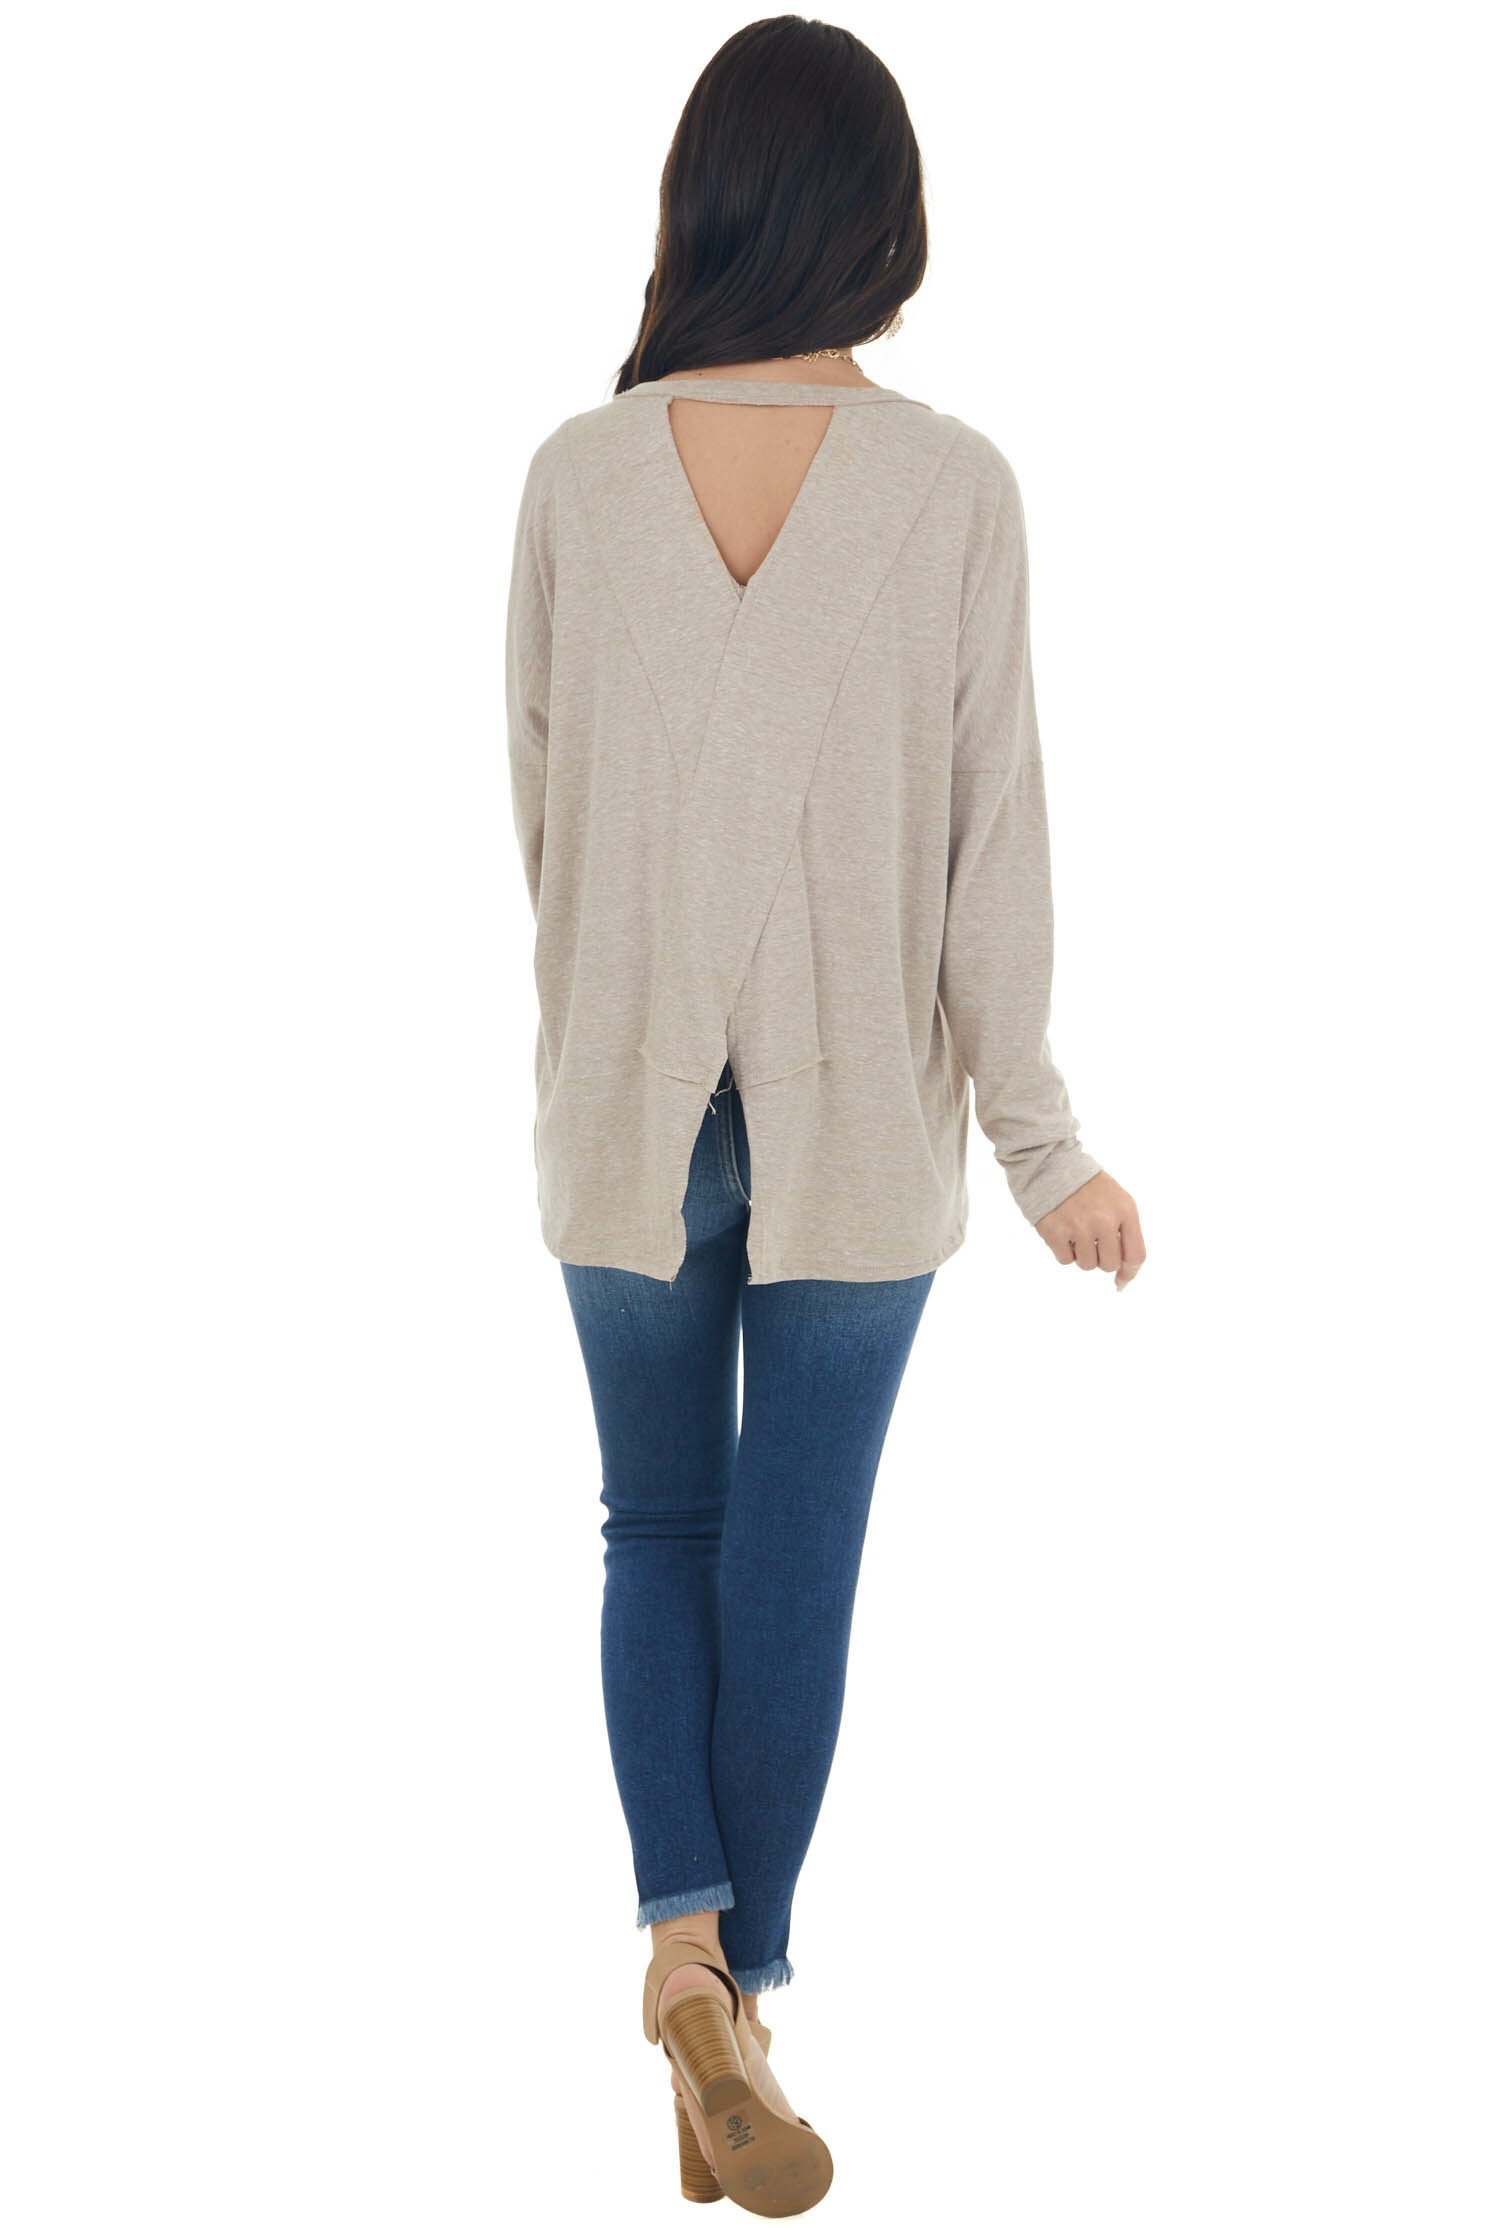 Heathered Latte Criss Cross Back Cut Out Top